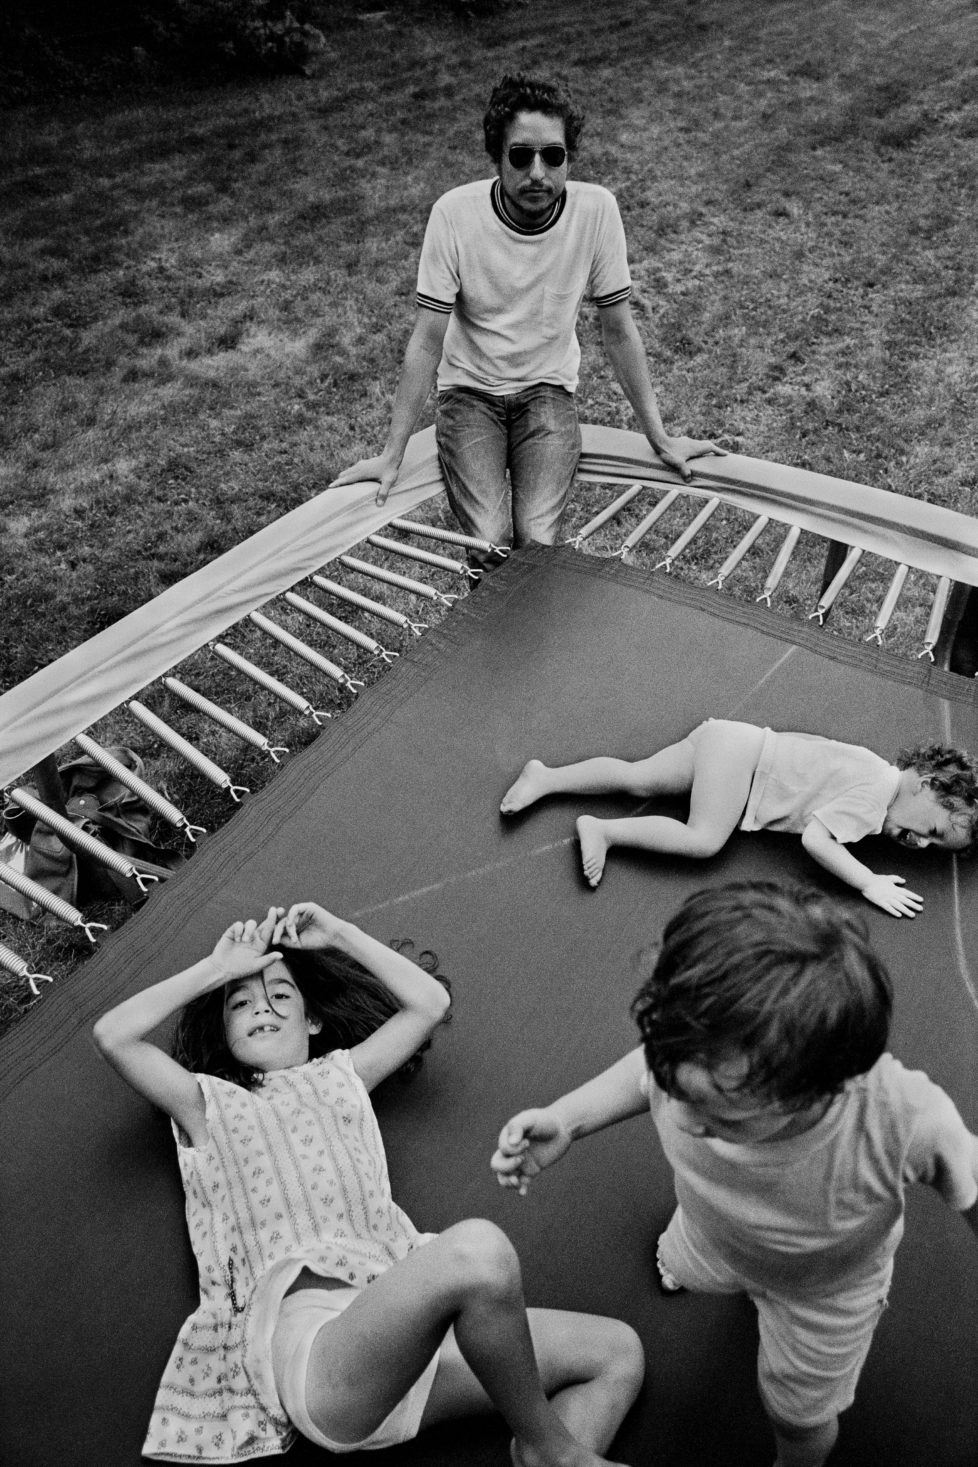 Bob Dylan, w. his children, Jesse, Anna, and Maria, Ohayo Mtn. Rd. home, Woodstock, NY, 1970. © Elliott Landy / Magnum Photos / Agentur Focus